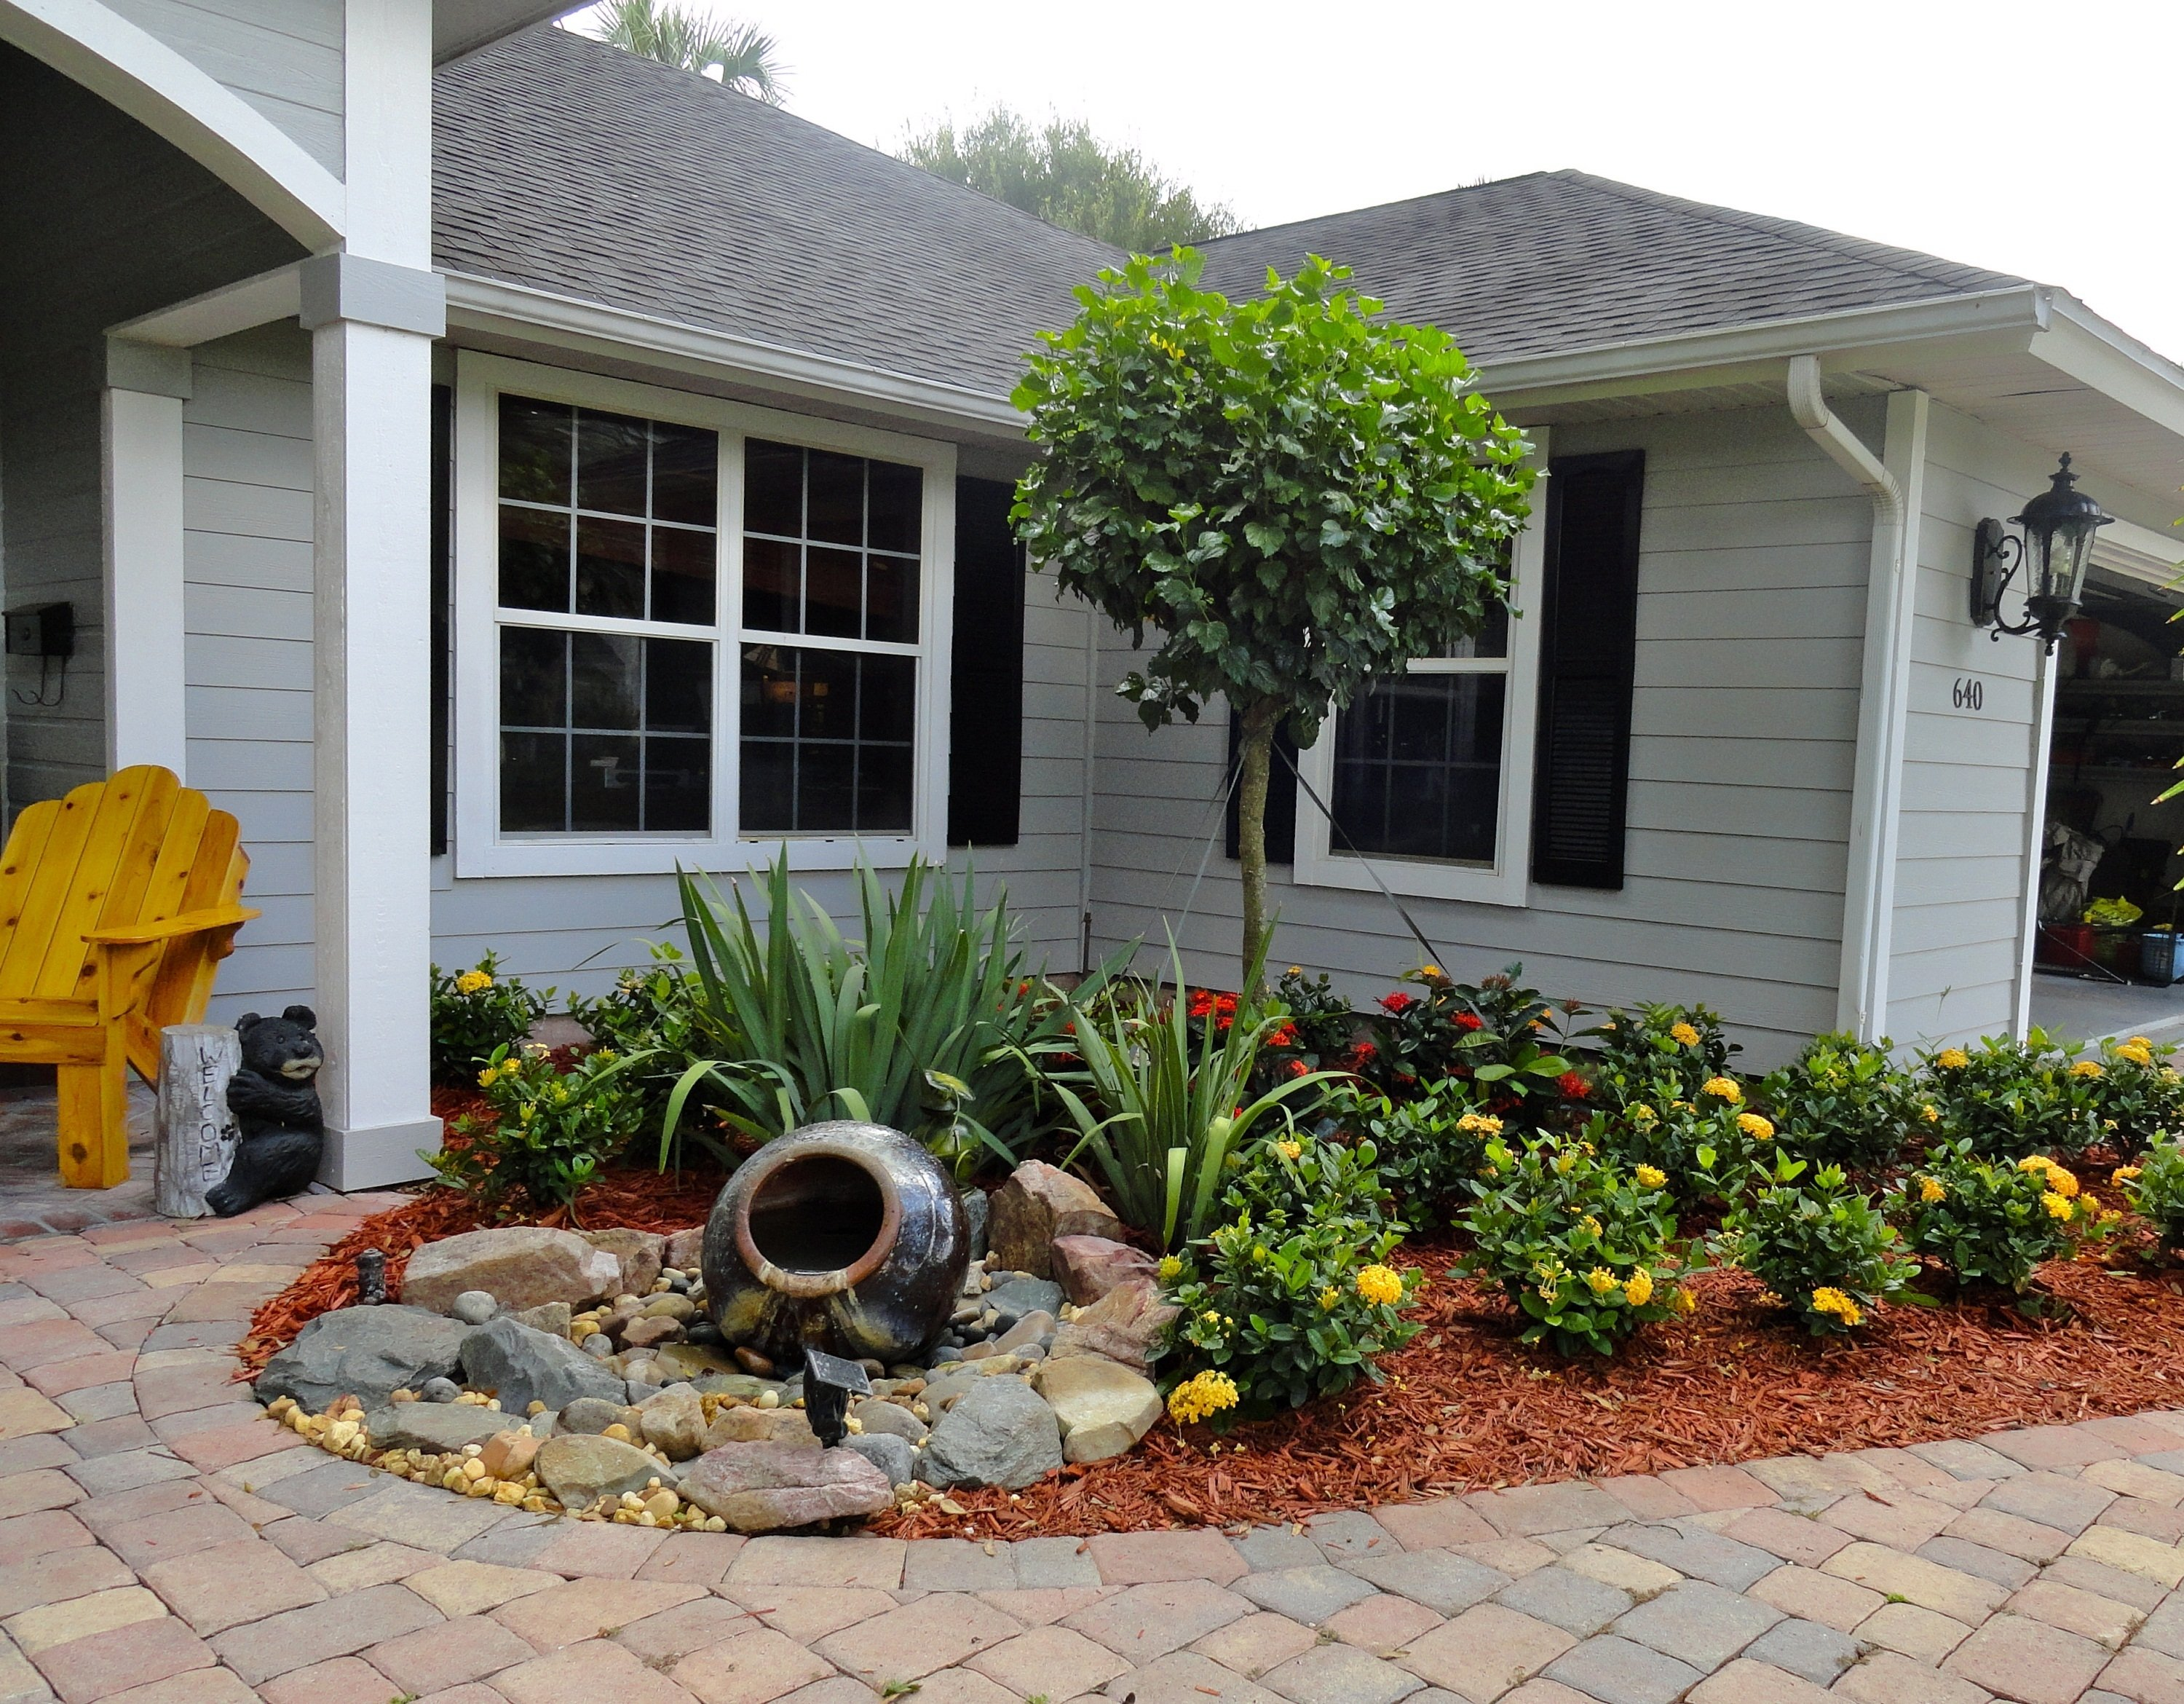 10 Stylish Small Front Yard Flower Bed Ideas excellent simple landscaping ideas for small front yards pictures 1 2020